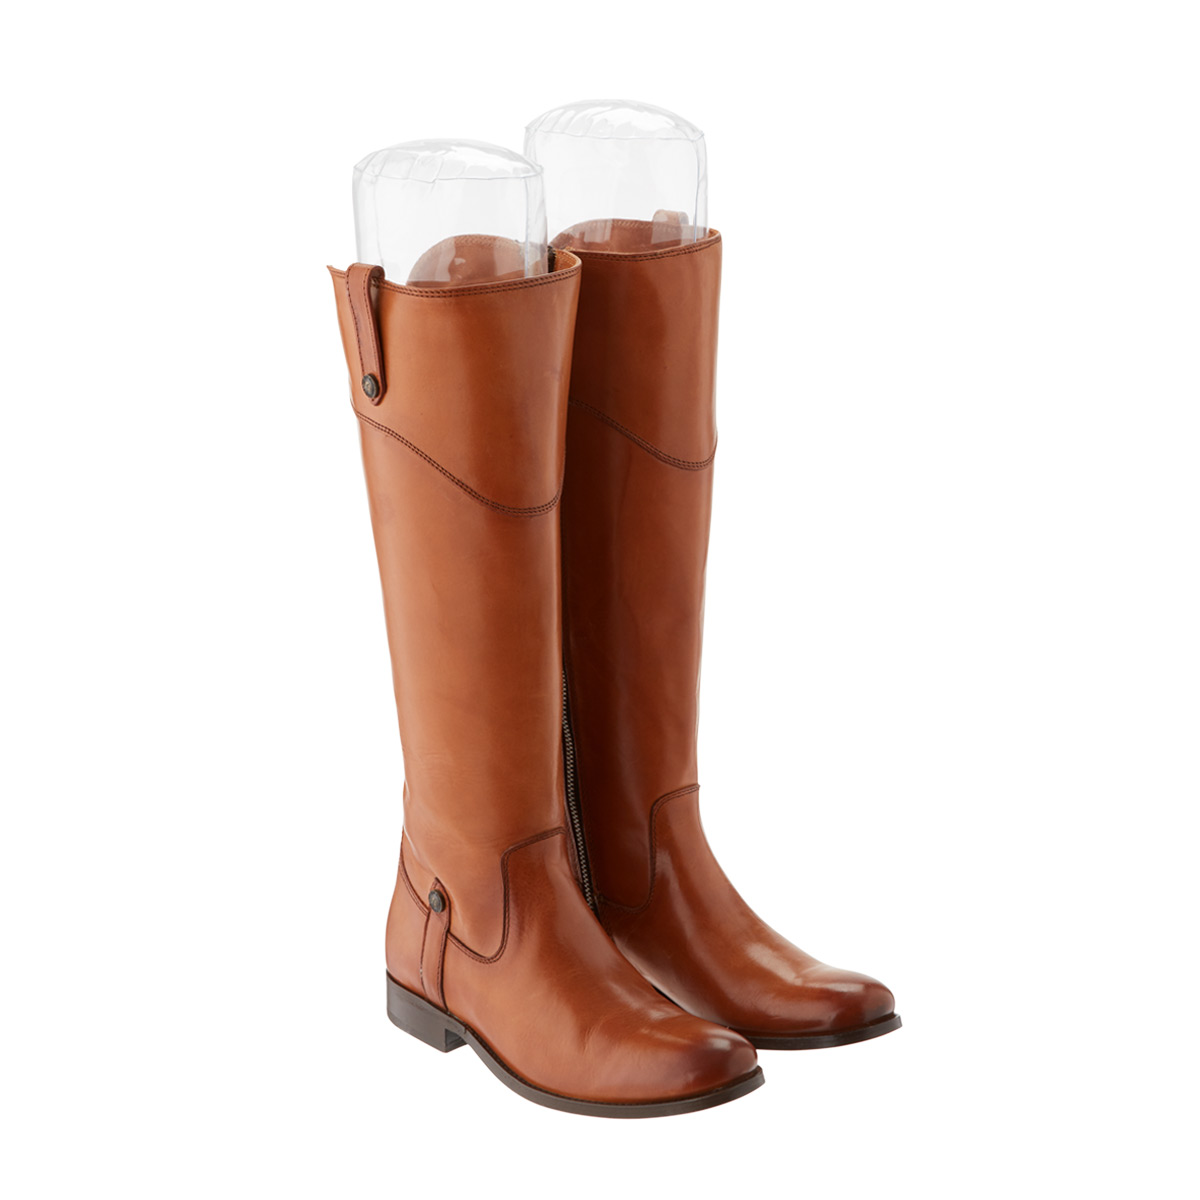 Clear Inflatable Boot Shapers